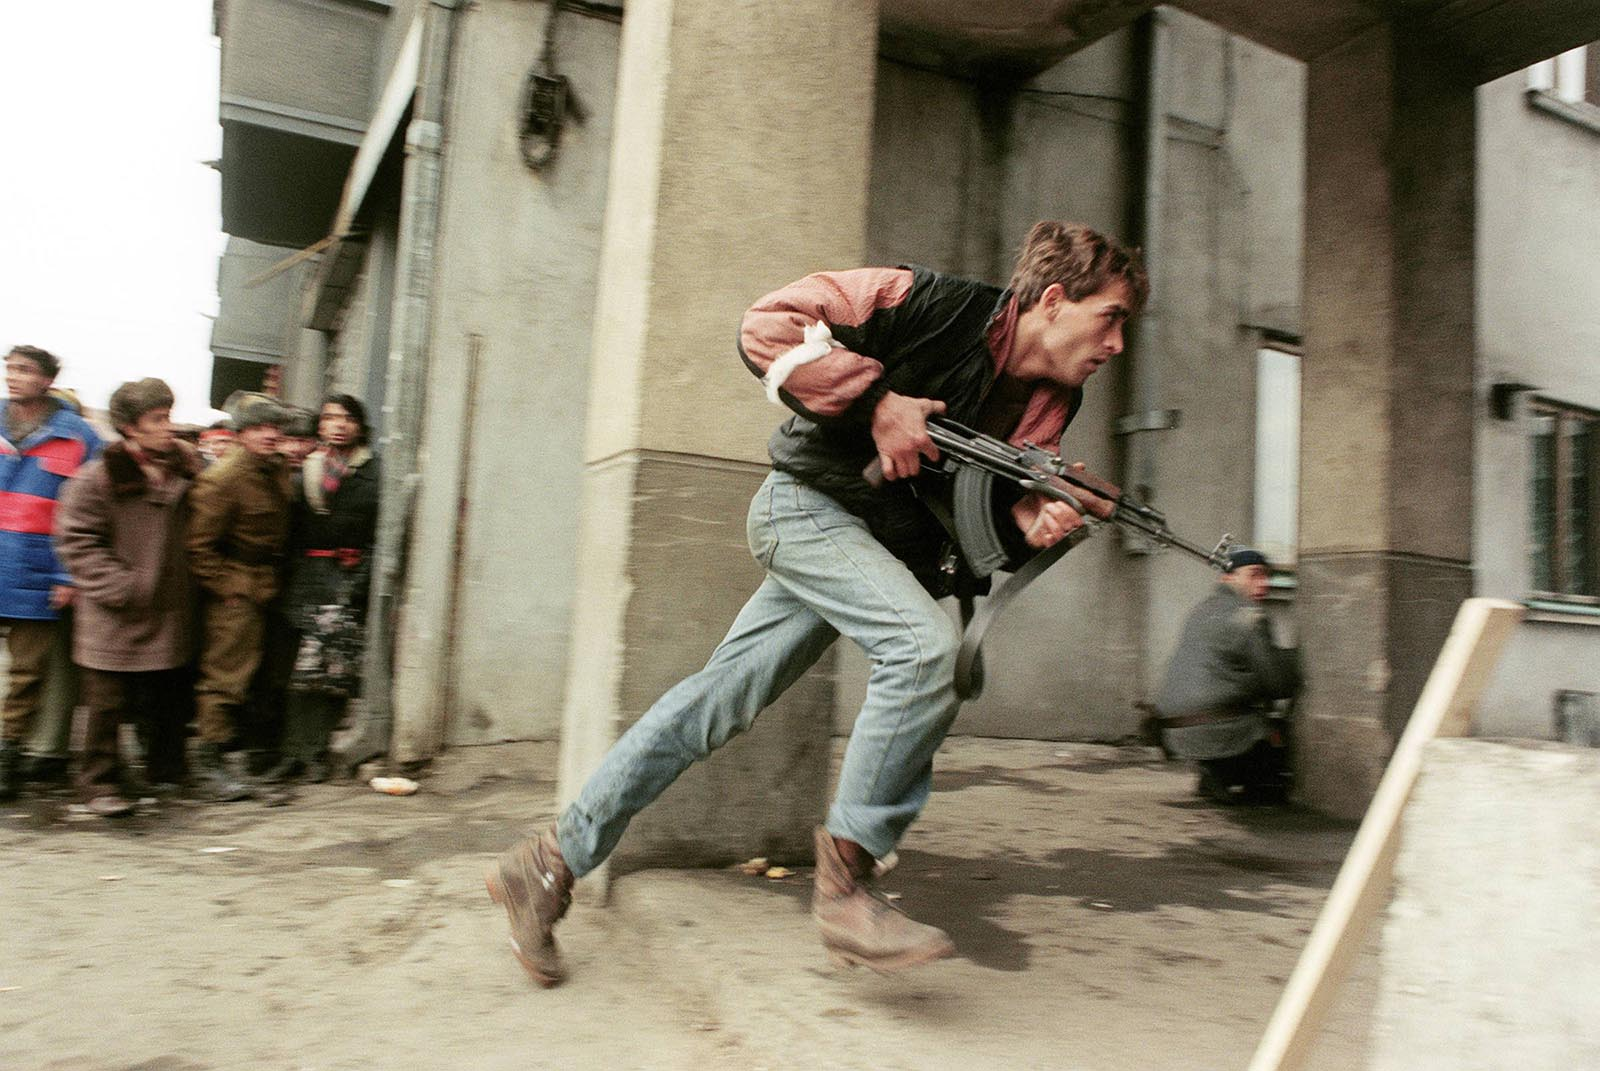 An anti-Communist civilian fighter armed with a Kalashnikov AK-47 chases the supposedly Securitate secret police agents loyal to the communist power during a street-fighting.